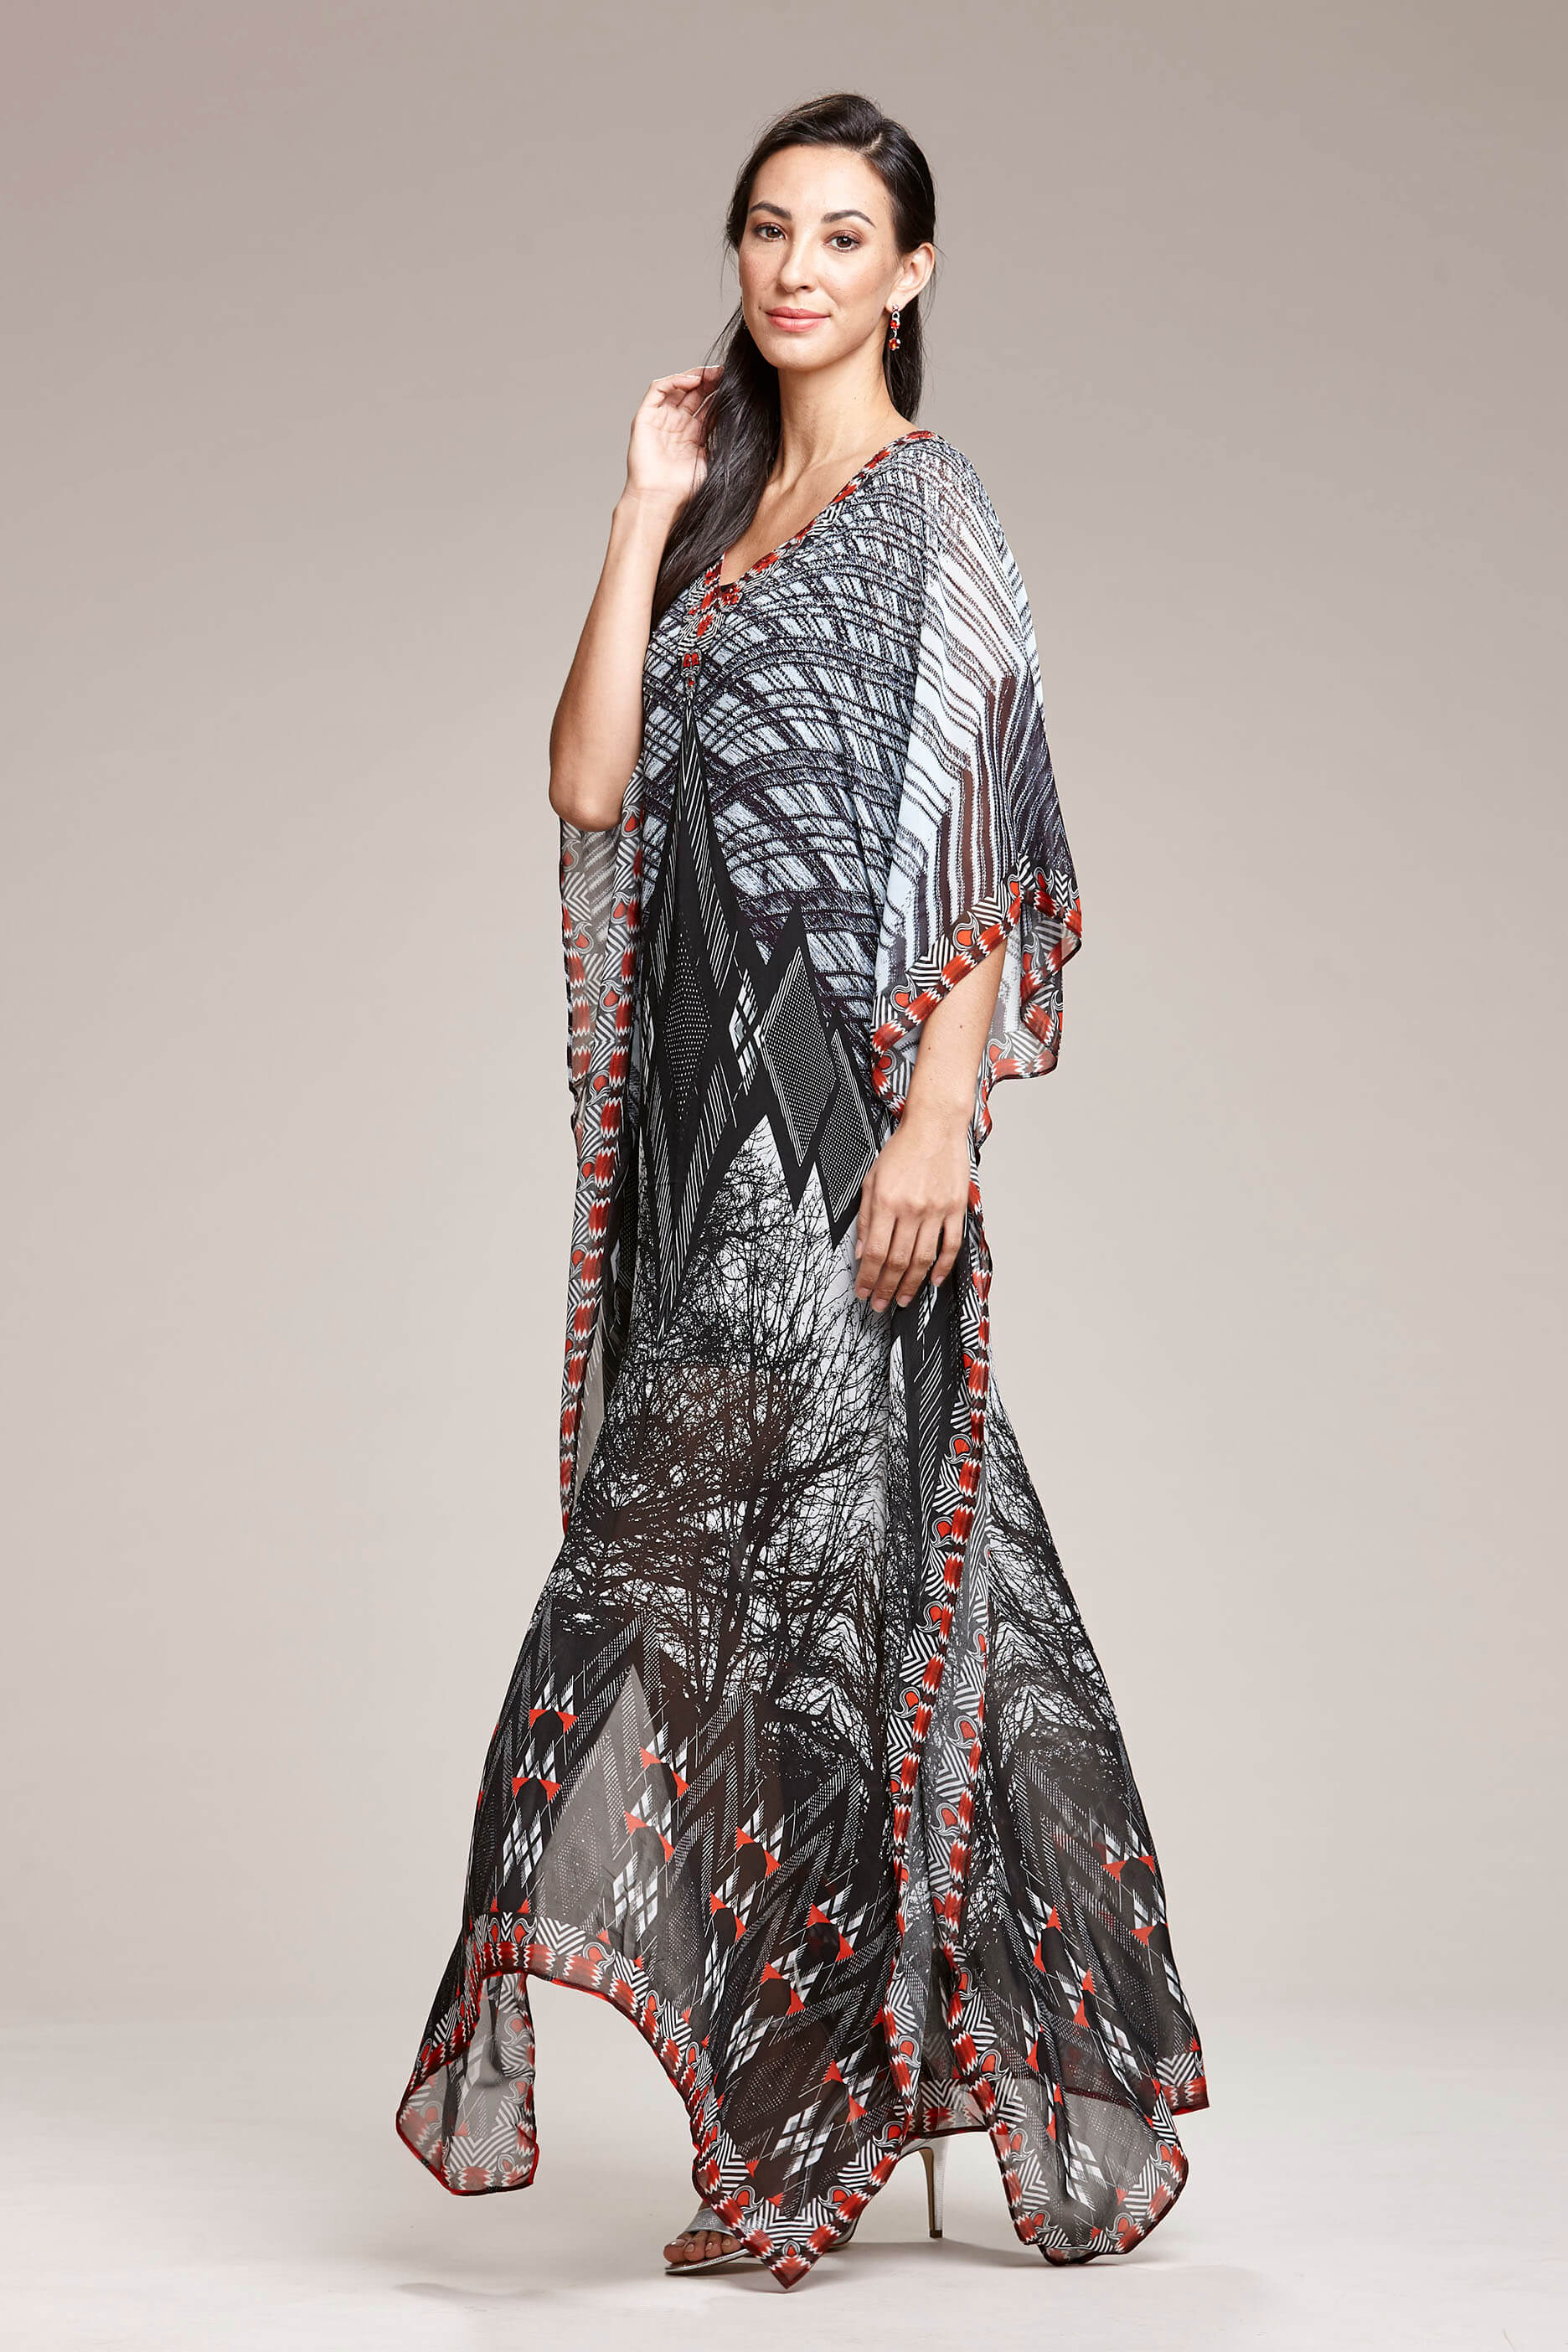 e40888f8ece6 Kaftan Maxi Dress Black Red Graphic Tree Print With Crystal Detail Left  Side View